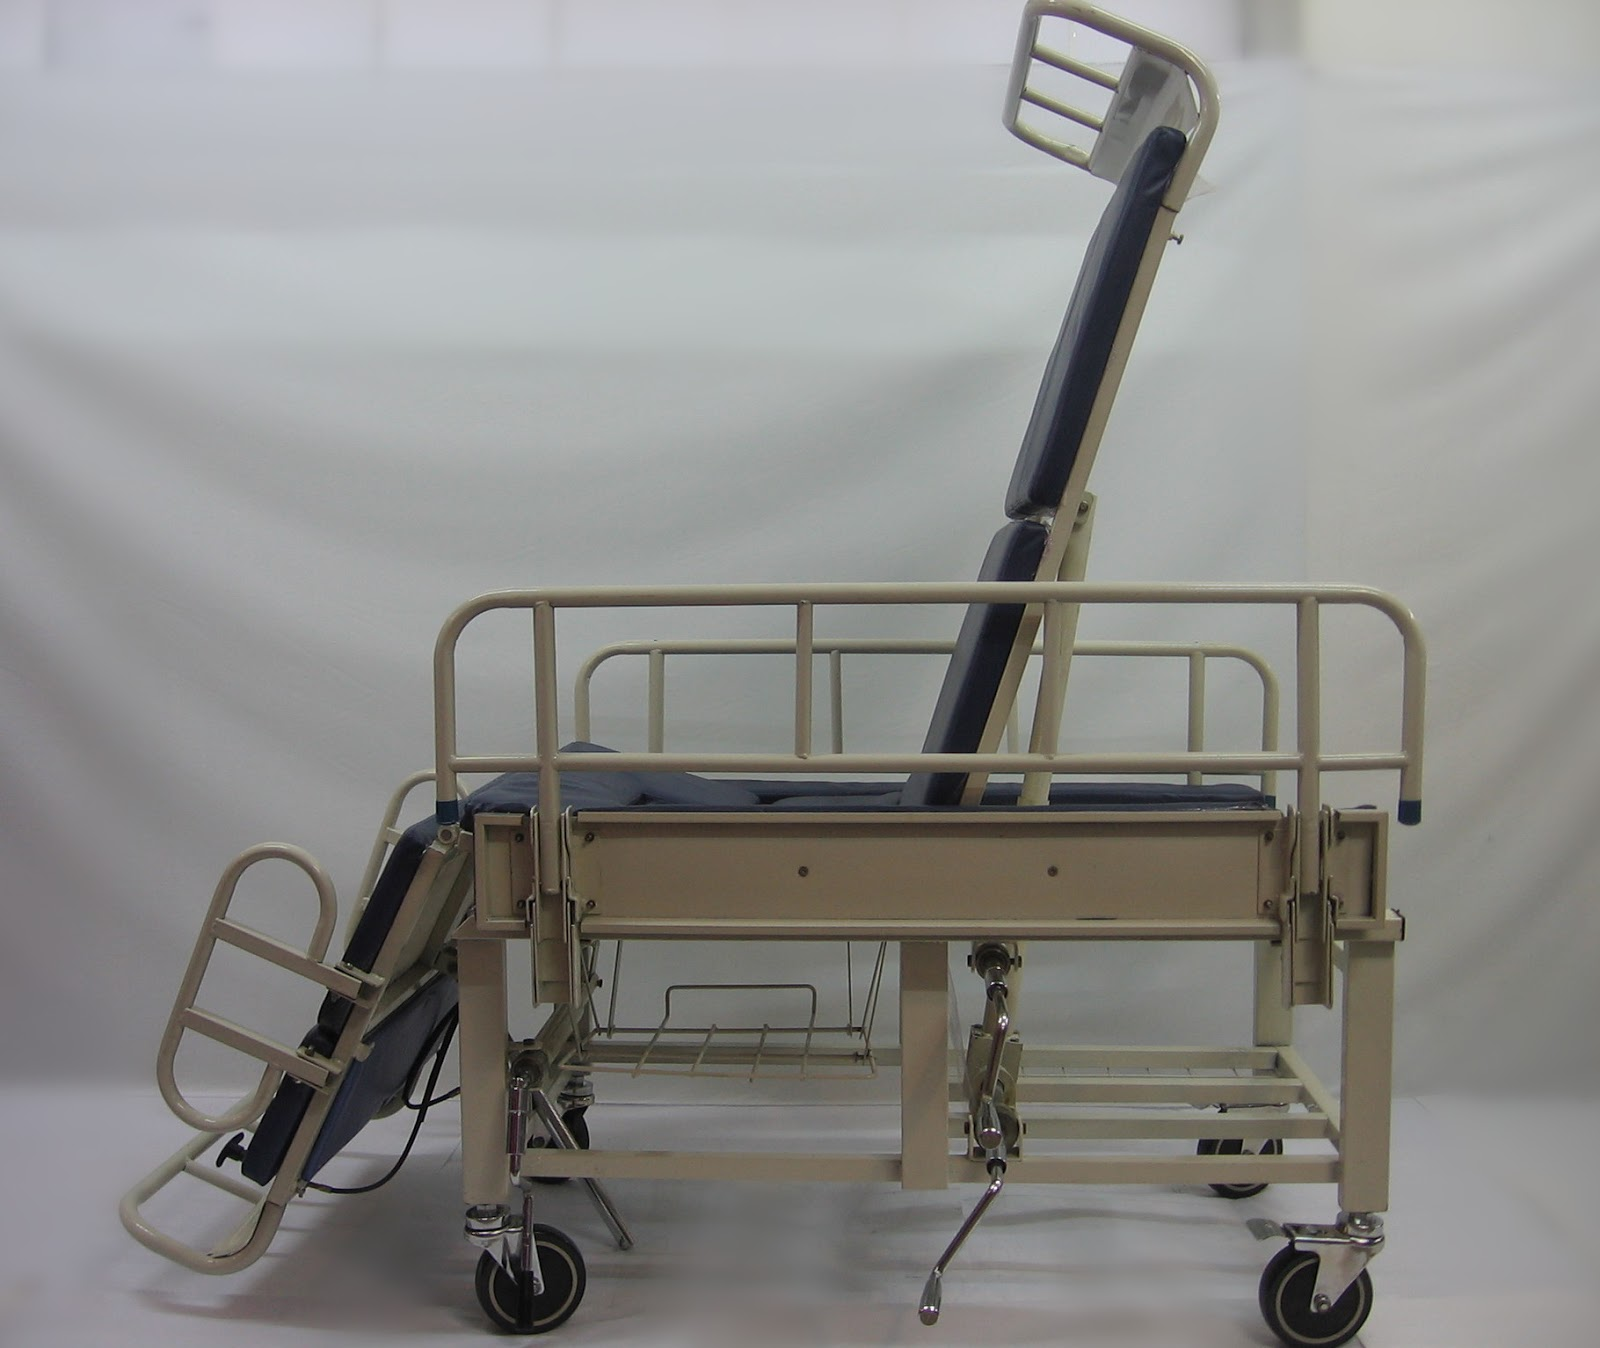 hospital chairs that convert to beds ikea tobias chair review bed commode converti end 5 24 2017 7 15 am